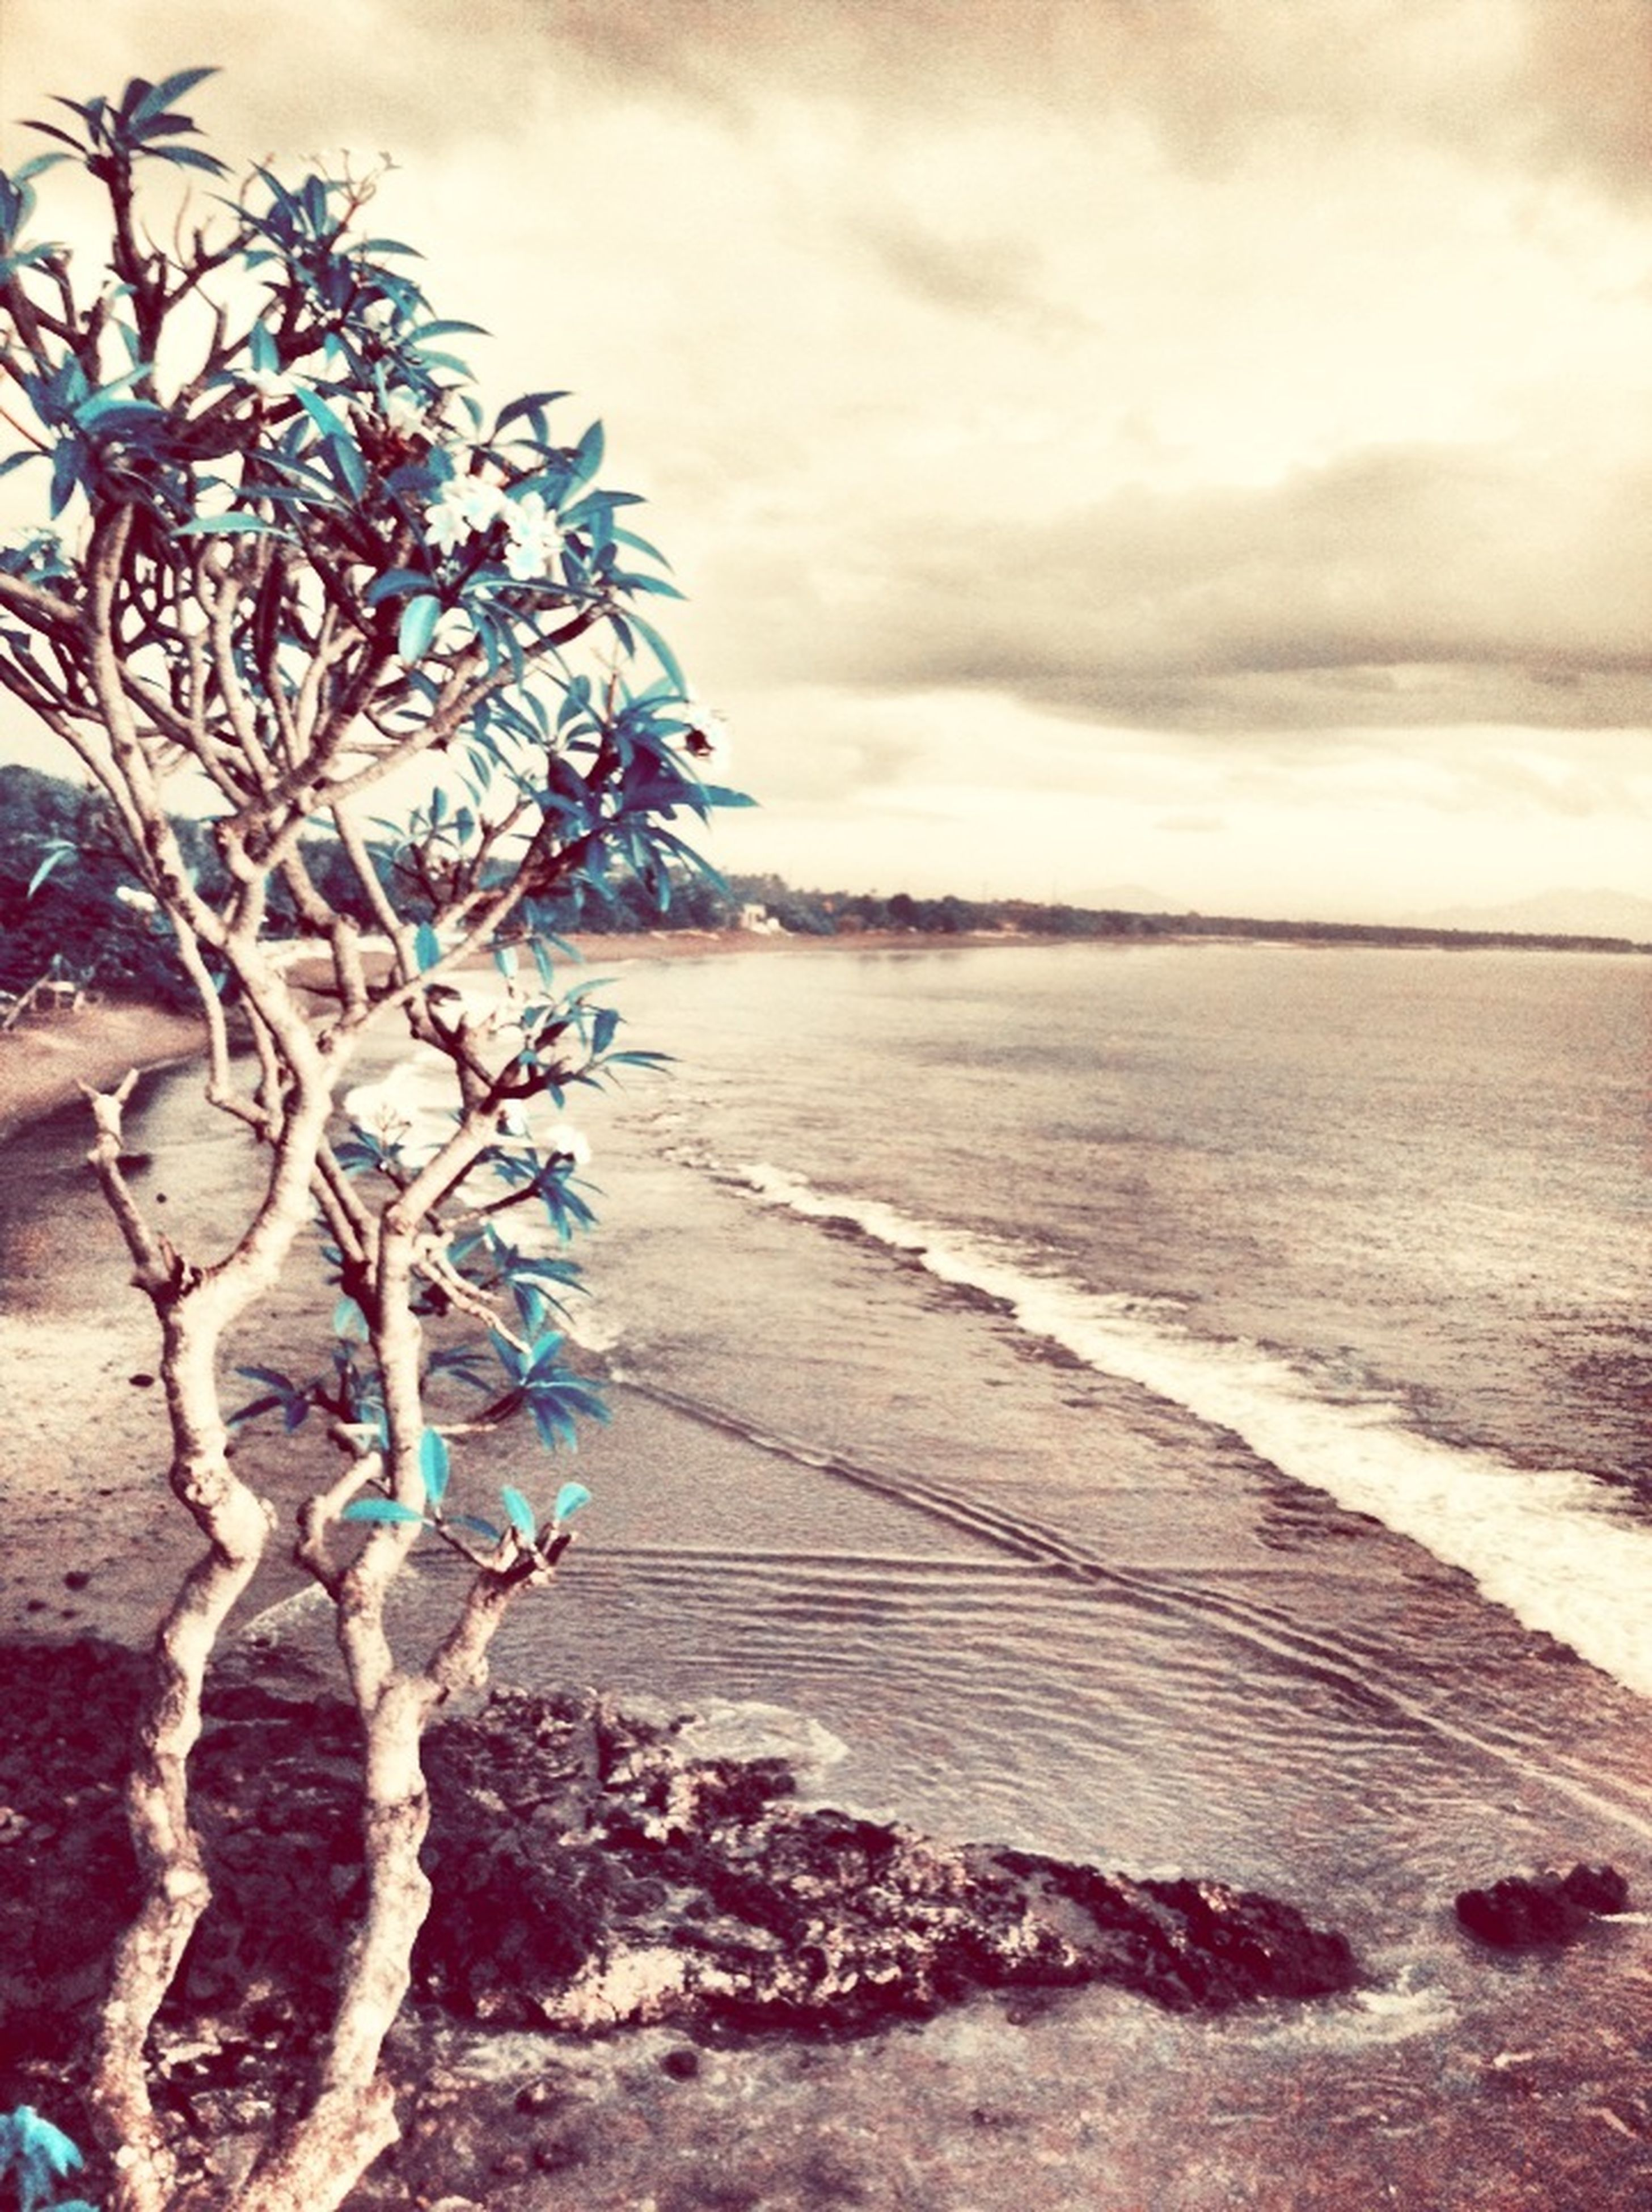 sea, beach, sky, water, horizon over water, nature, beauty in nature, shore, flower, tranquility, sand, tranquil scene, scenics, cloud - sky, plant, growth, no people, day, outdoors, sunlight